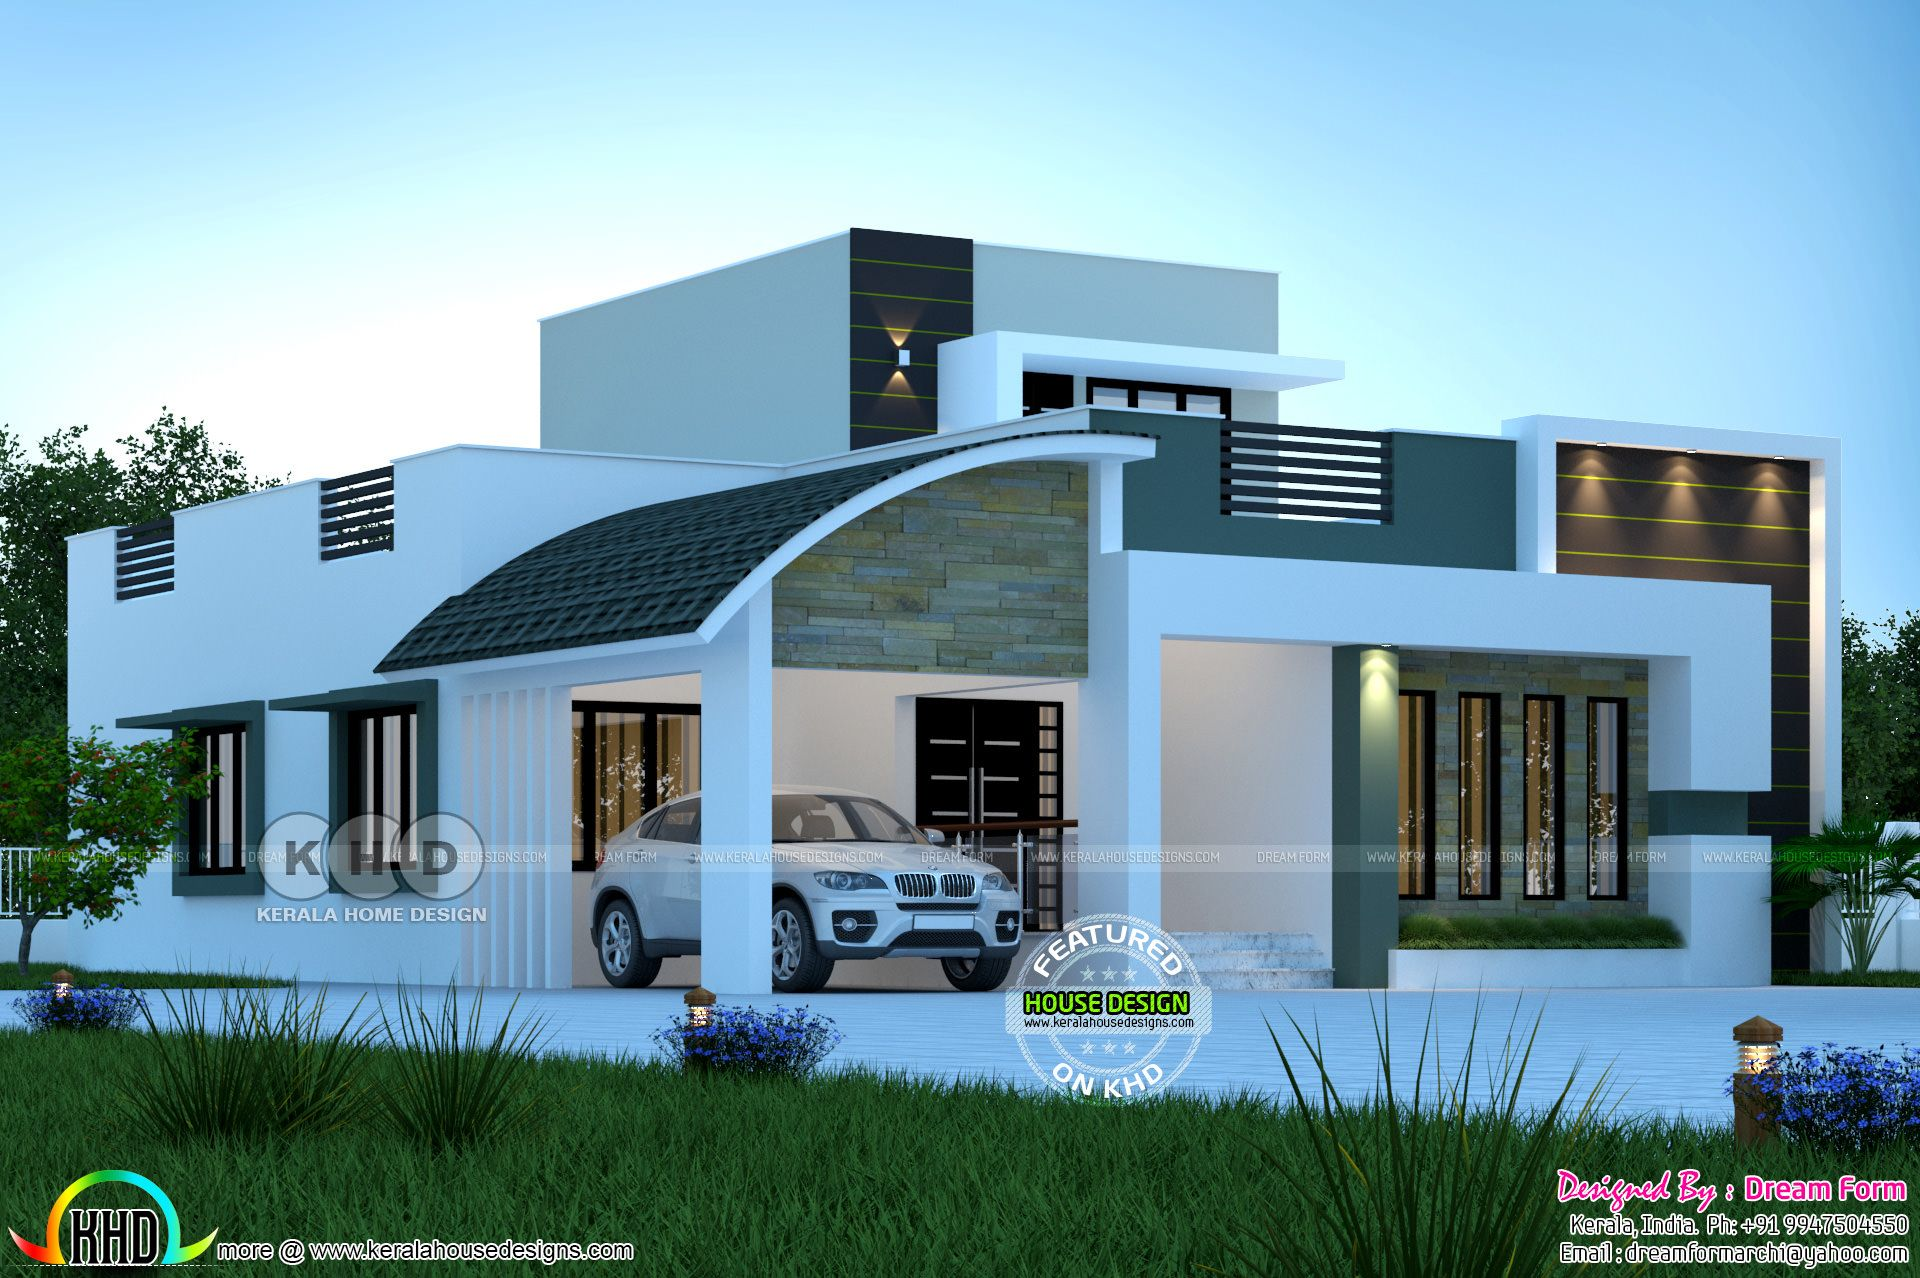 3 Bhk 2300 Sq Ft Beautiful Mixed Roof Modern Home Design In 2020 Kerala House Design Small House Front Design Single Floor House Design